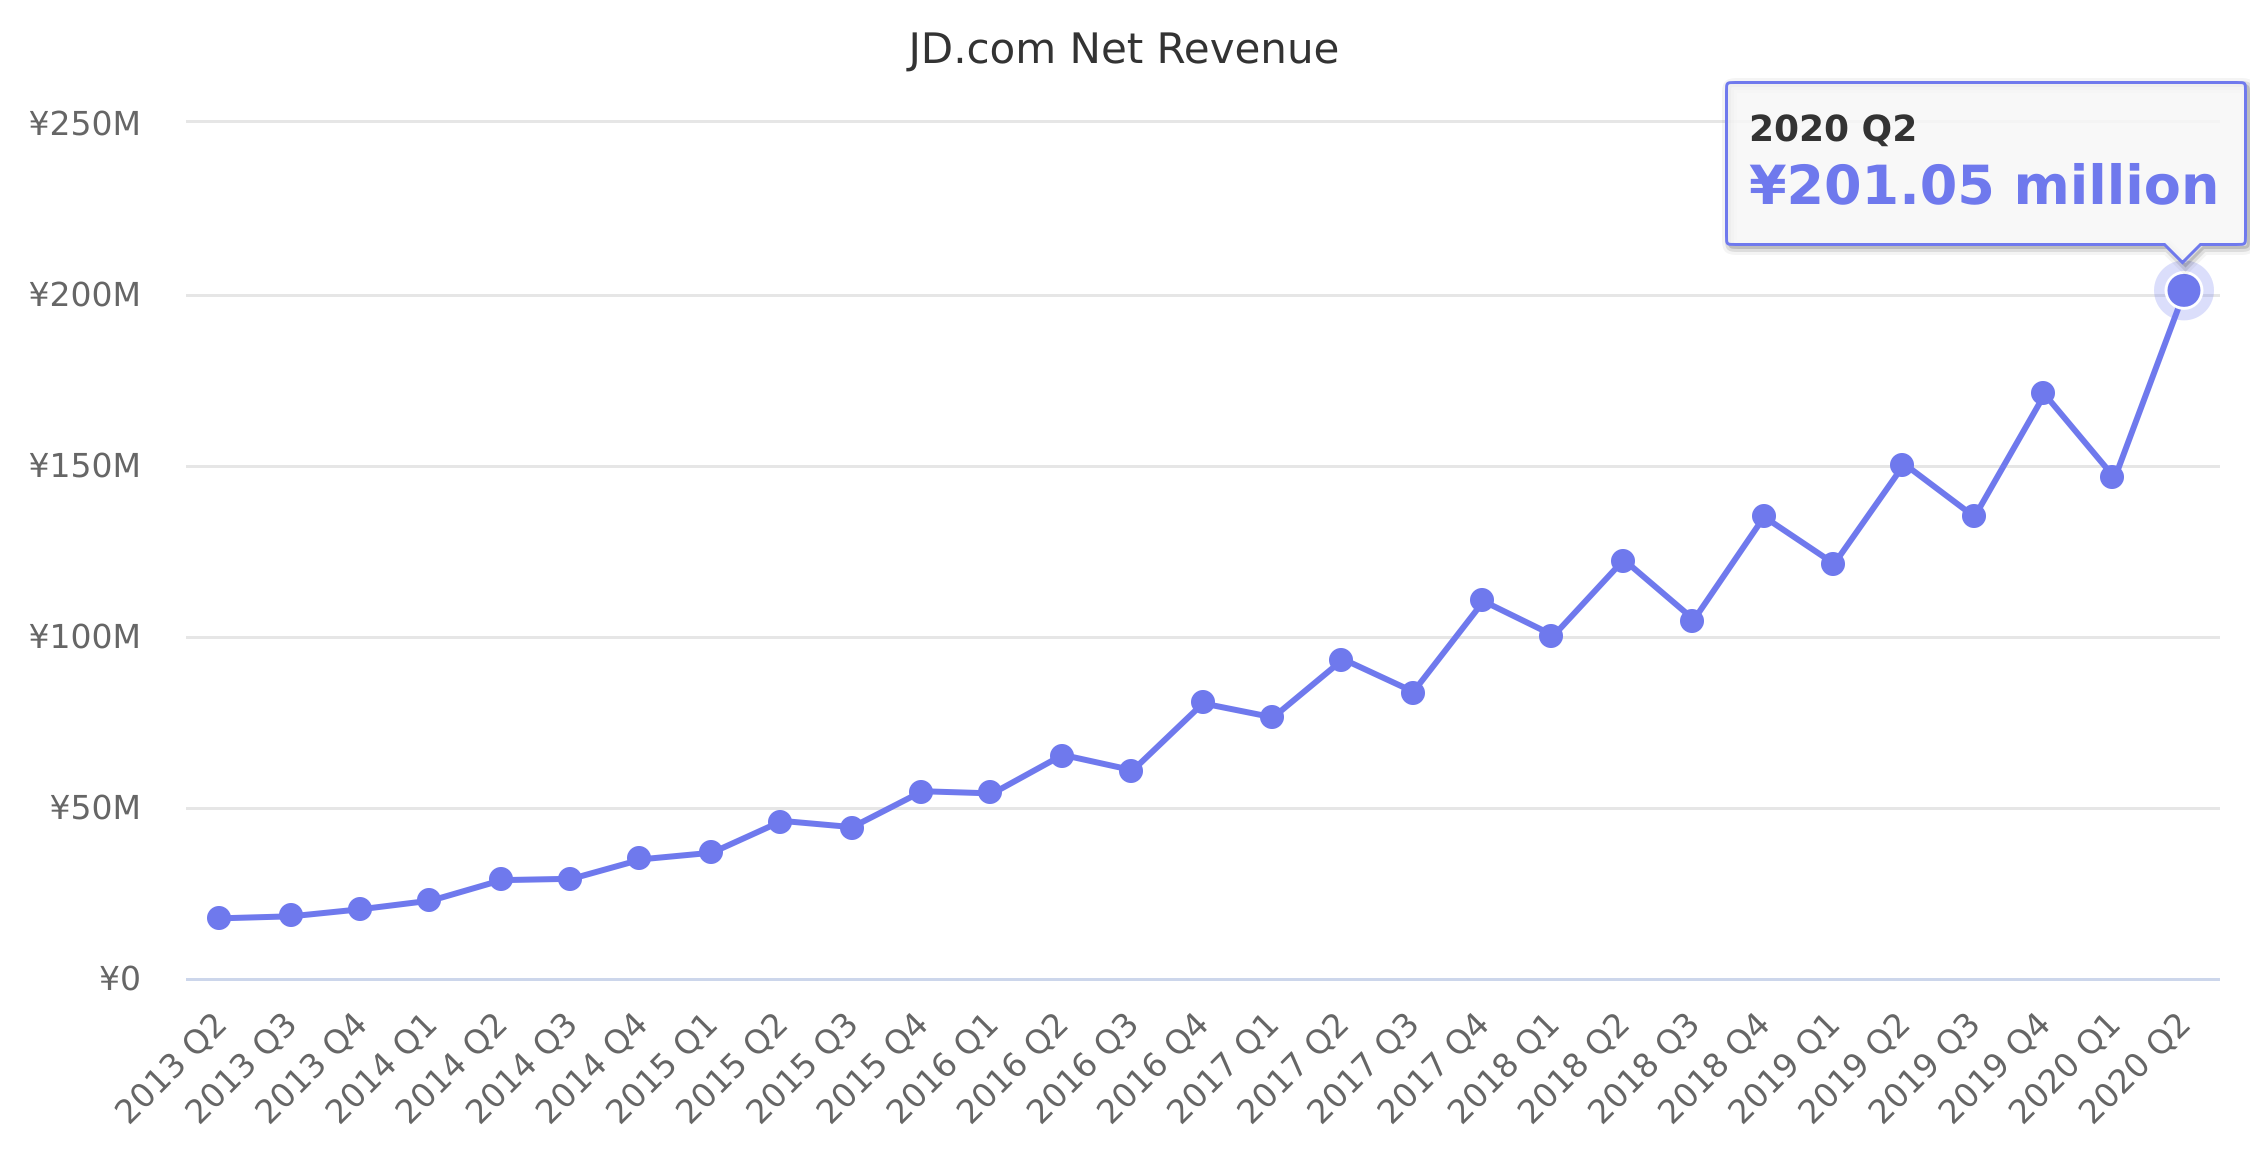 JD.com Net Revenue 2013-2019